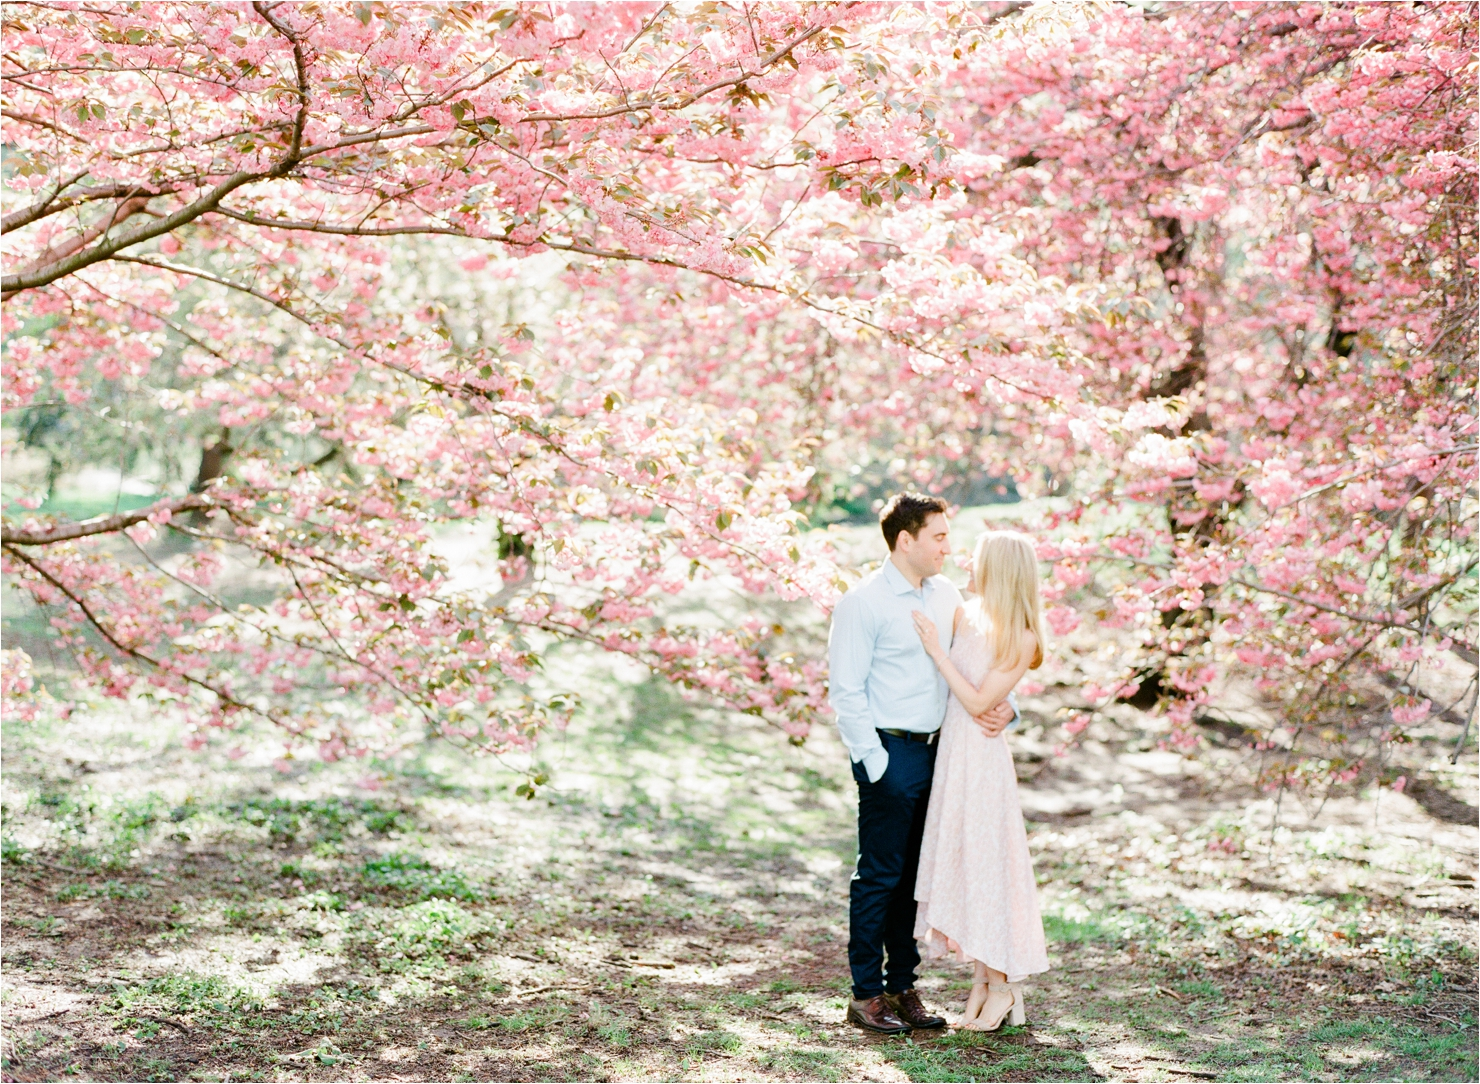 Spring Cherry Blossom Engagement Pictures in Central Park NYC